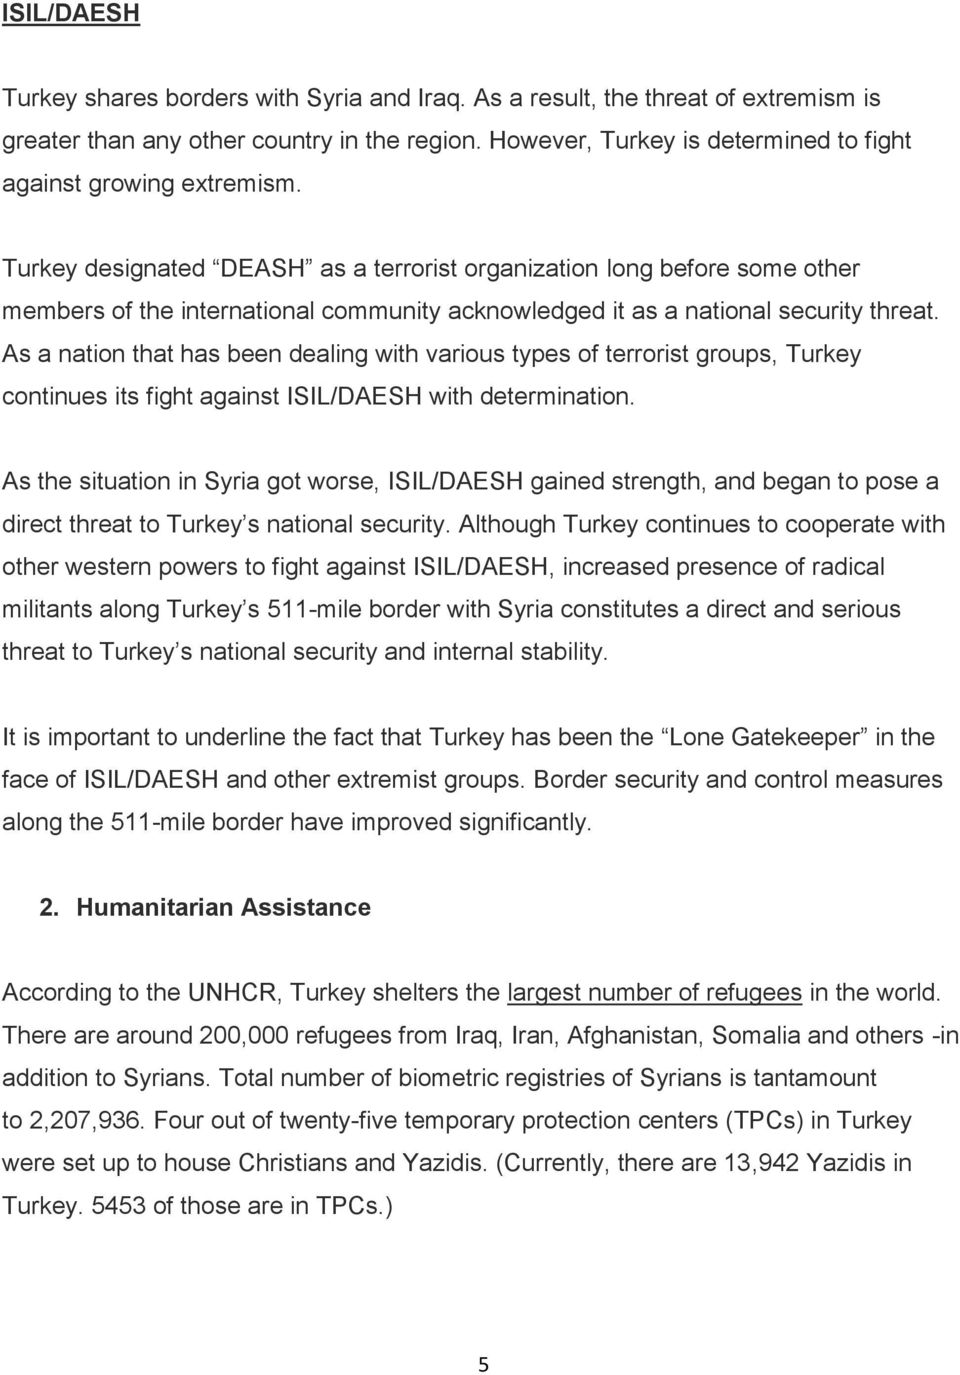 Turkey designated DEASH as a terrorist organization long before some other members of the international community acknowledged it as a national security threat.